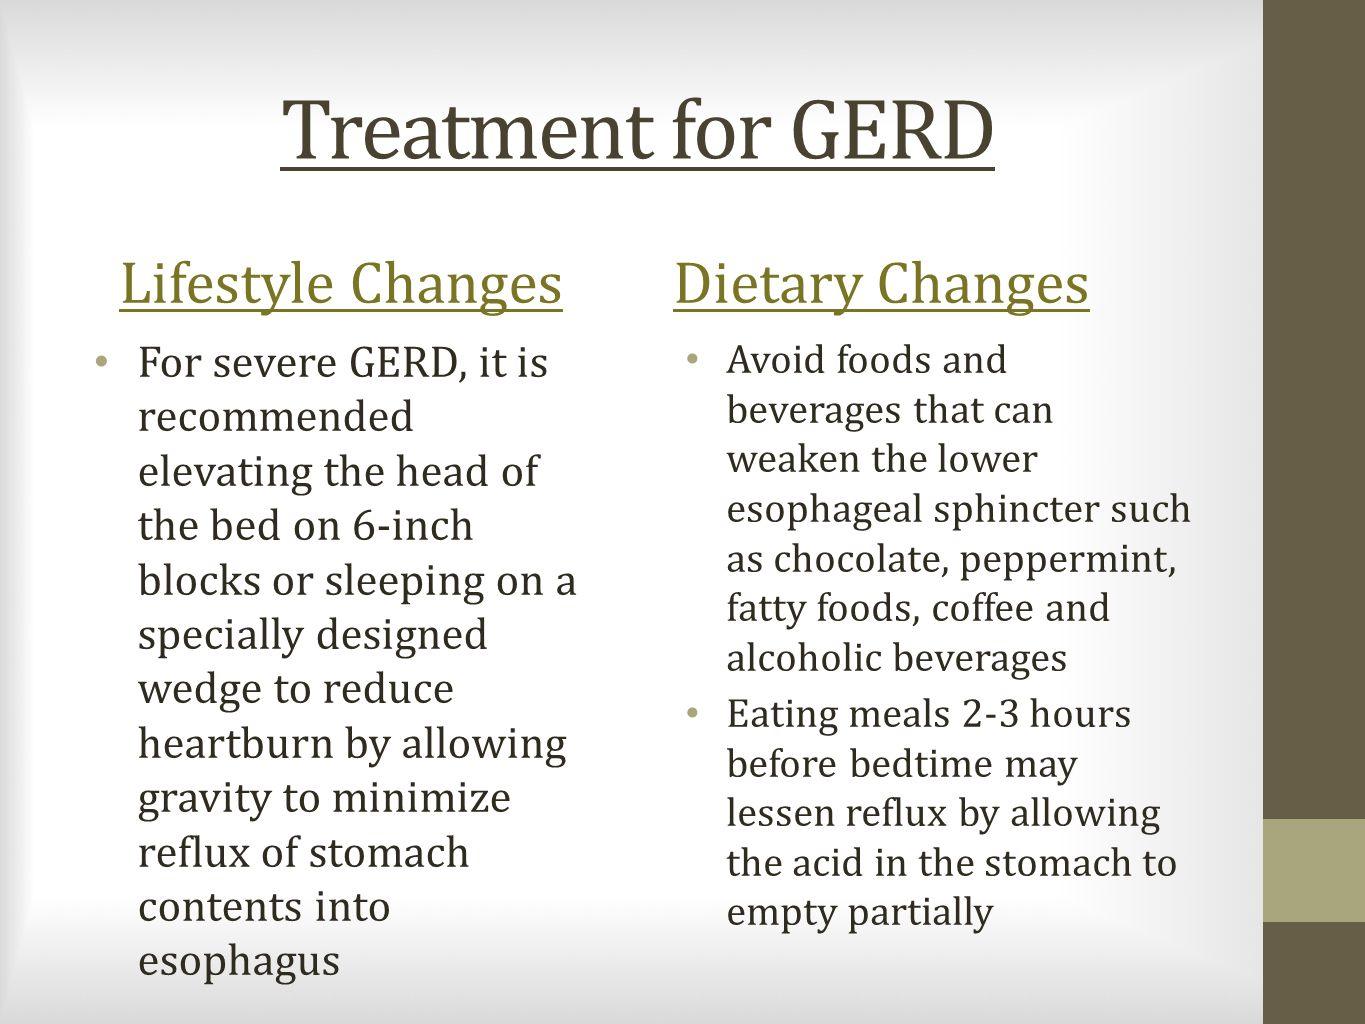 Treatment for GERD Lifestyle Changes For severe GERD, it is recommended elevating the head of the bed on 6-inch blocks or sleeping on a specially designed wedge to reduce heartburn by allowing gravity to minimize reflux of stomach contents into esophagus Dietary Changes Avoid foods and beverages that can weaken the lower esophageal sphincter such as chocolate, peppermint, fatty foods, coffee and alcoholic beverages Eating meals 2-3 hours before bedtime may lessen reflux by allowing the acid in the stomach to empty partially